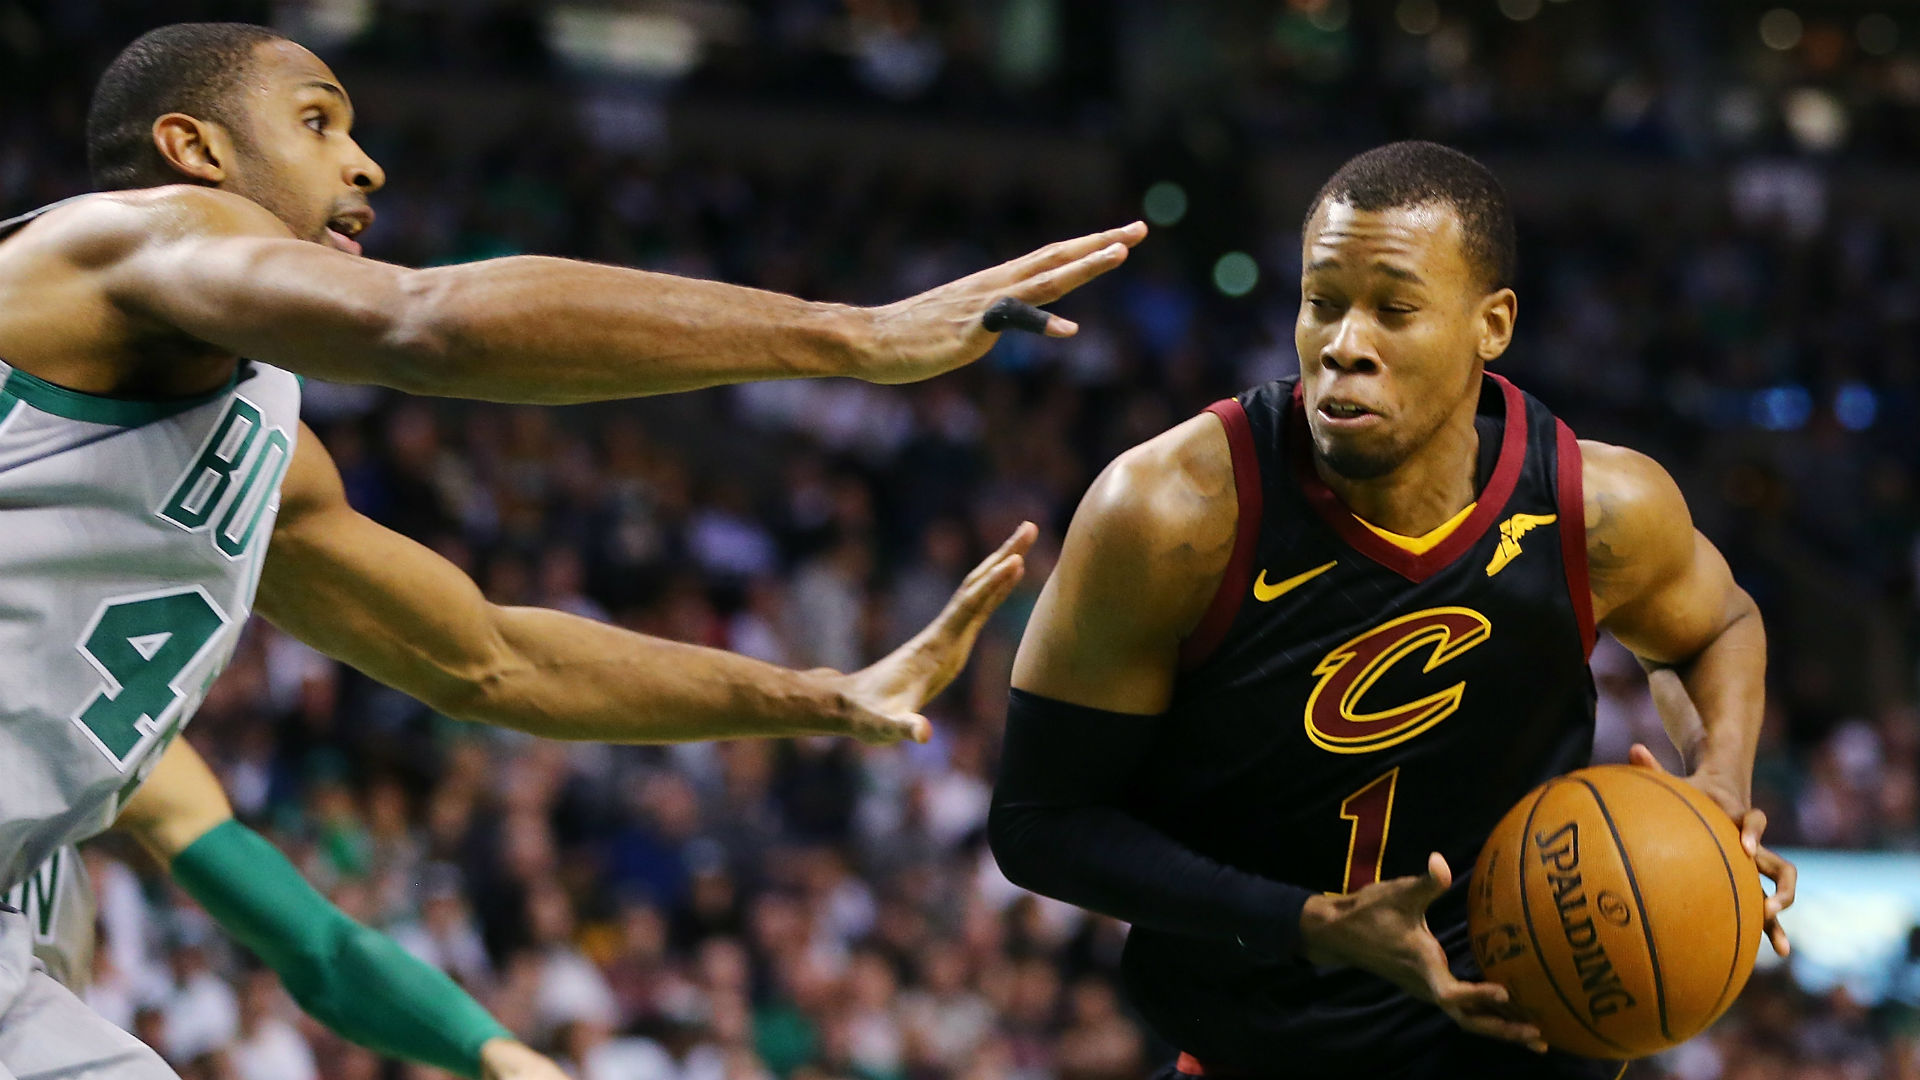 Look Cavs destroy Celtics on Pierce's jersey retirement night